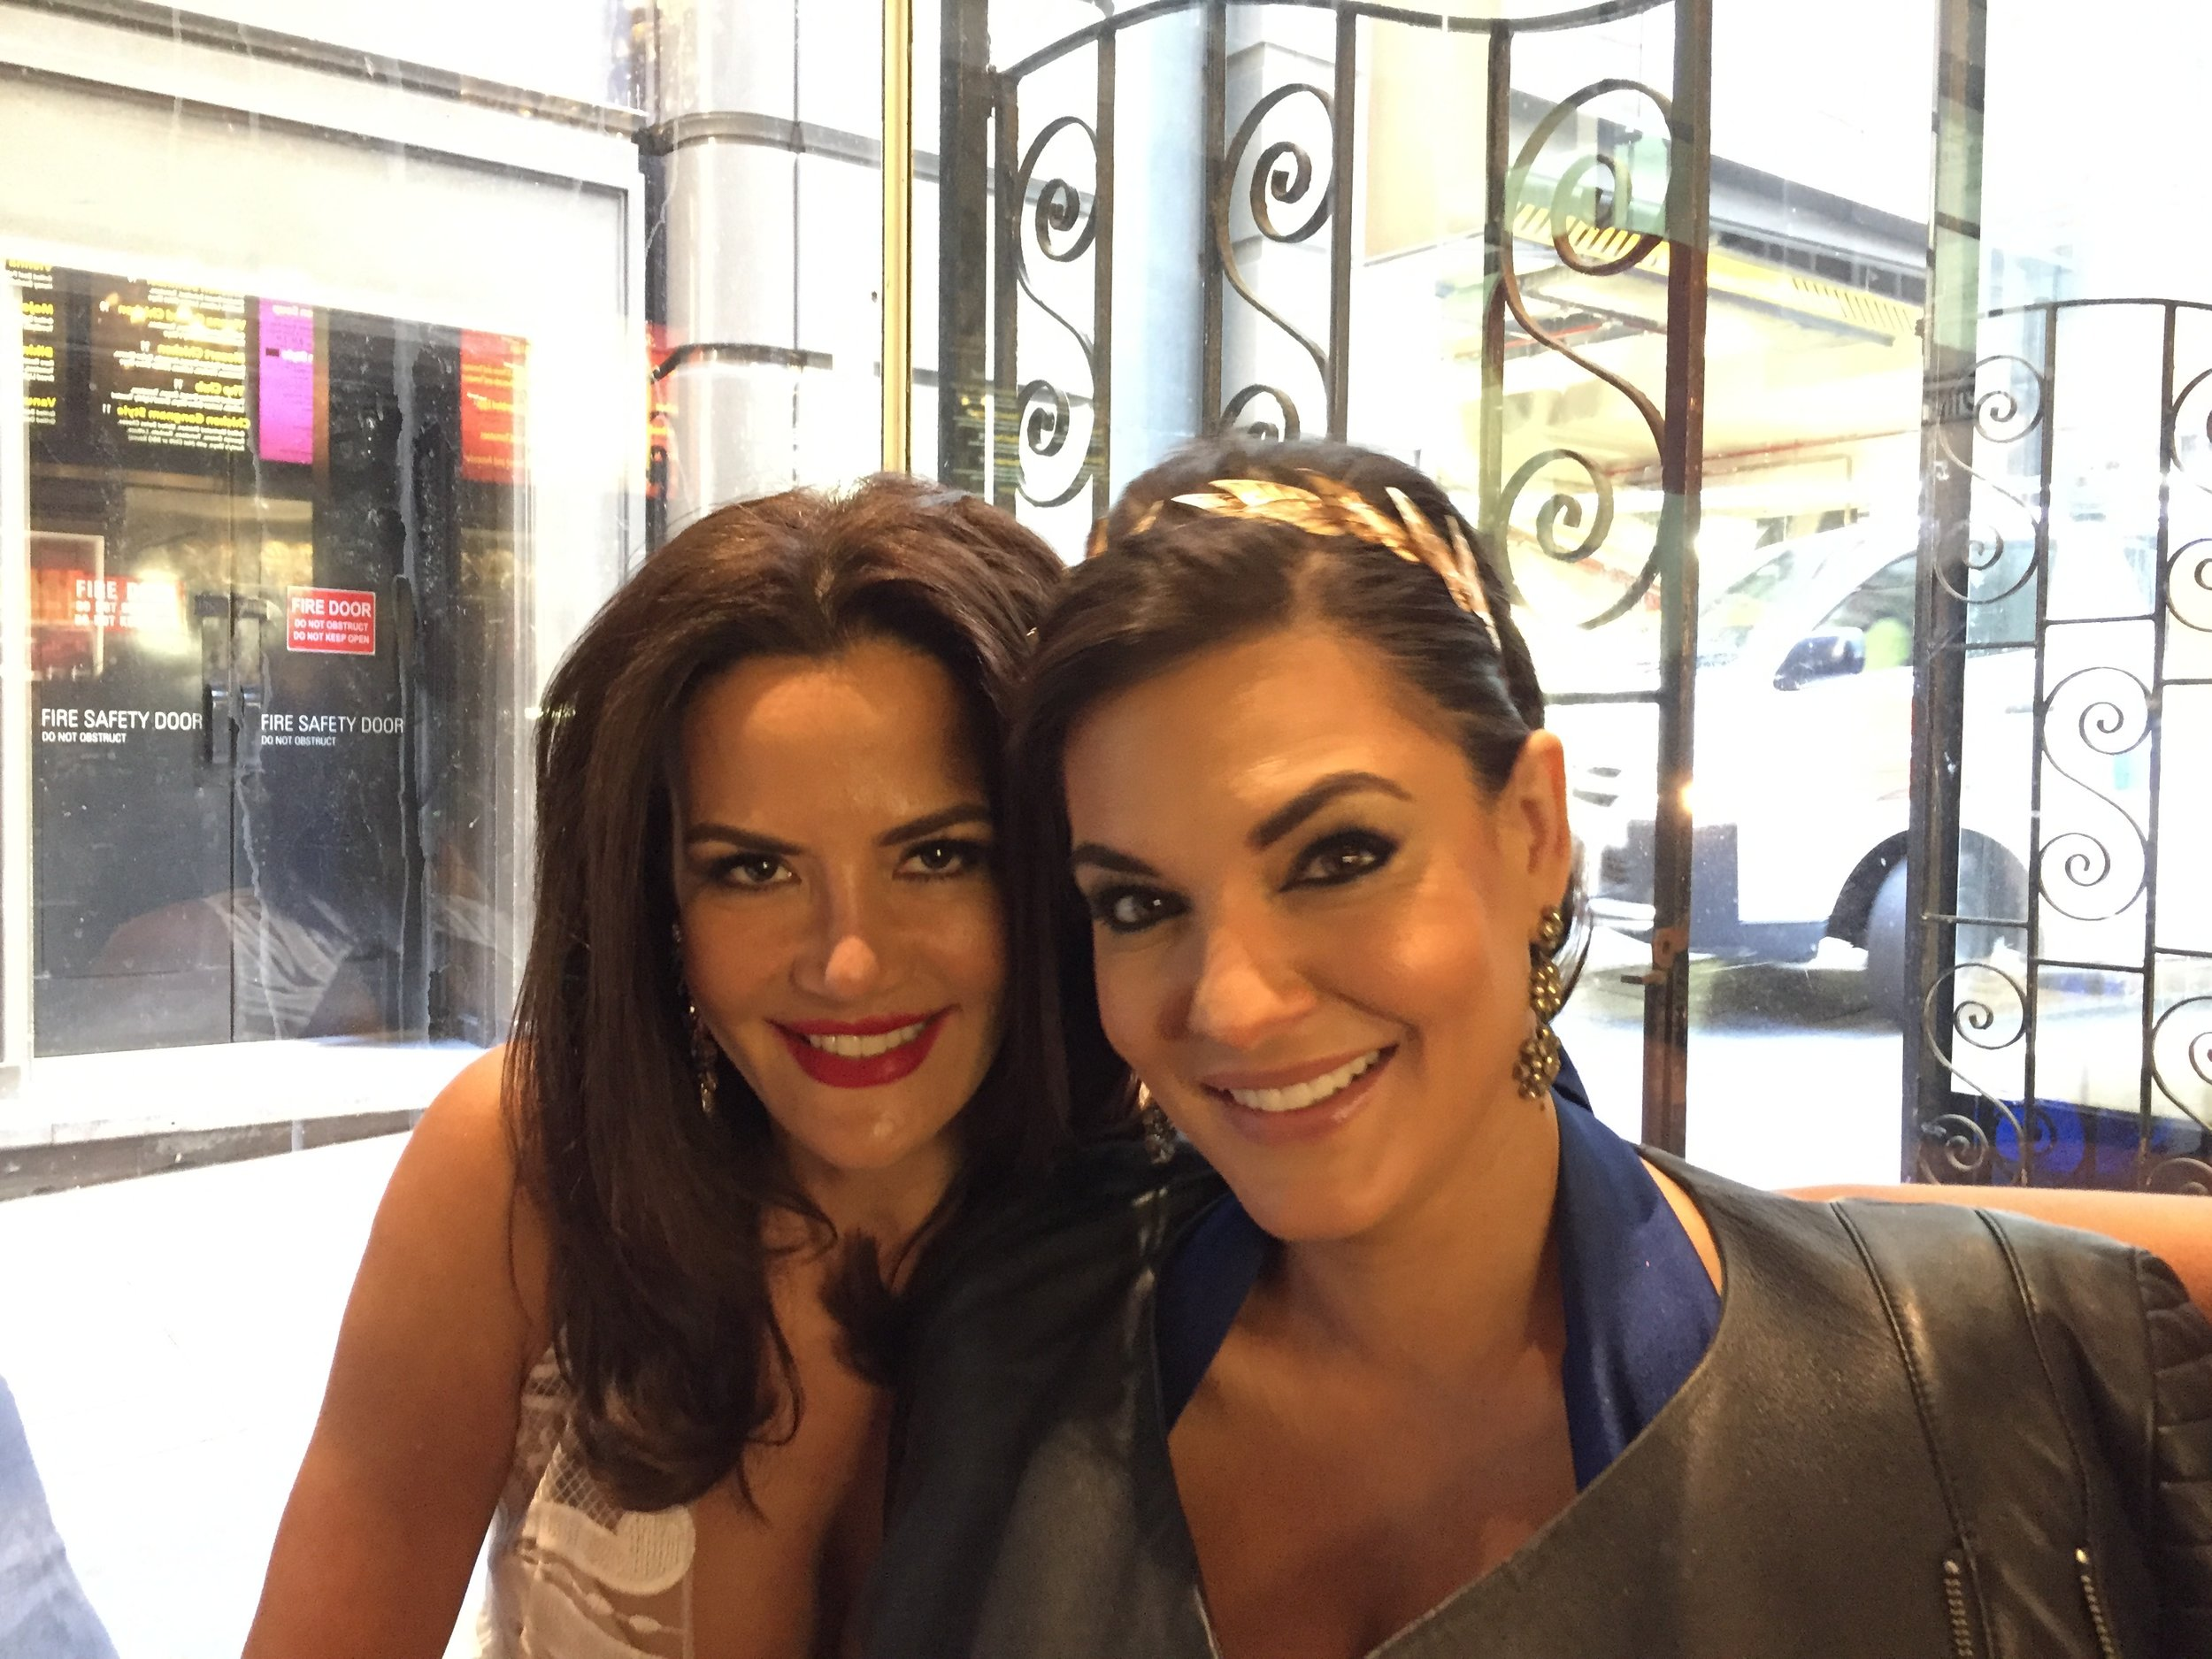 Krissy Marsh and Nicole O'Neil - Behind the Scenes of The Real Housewives of Sydney